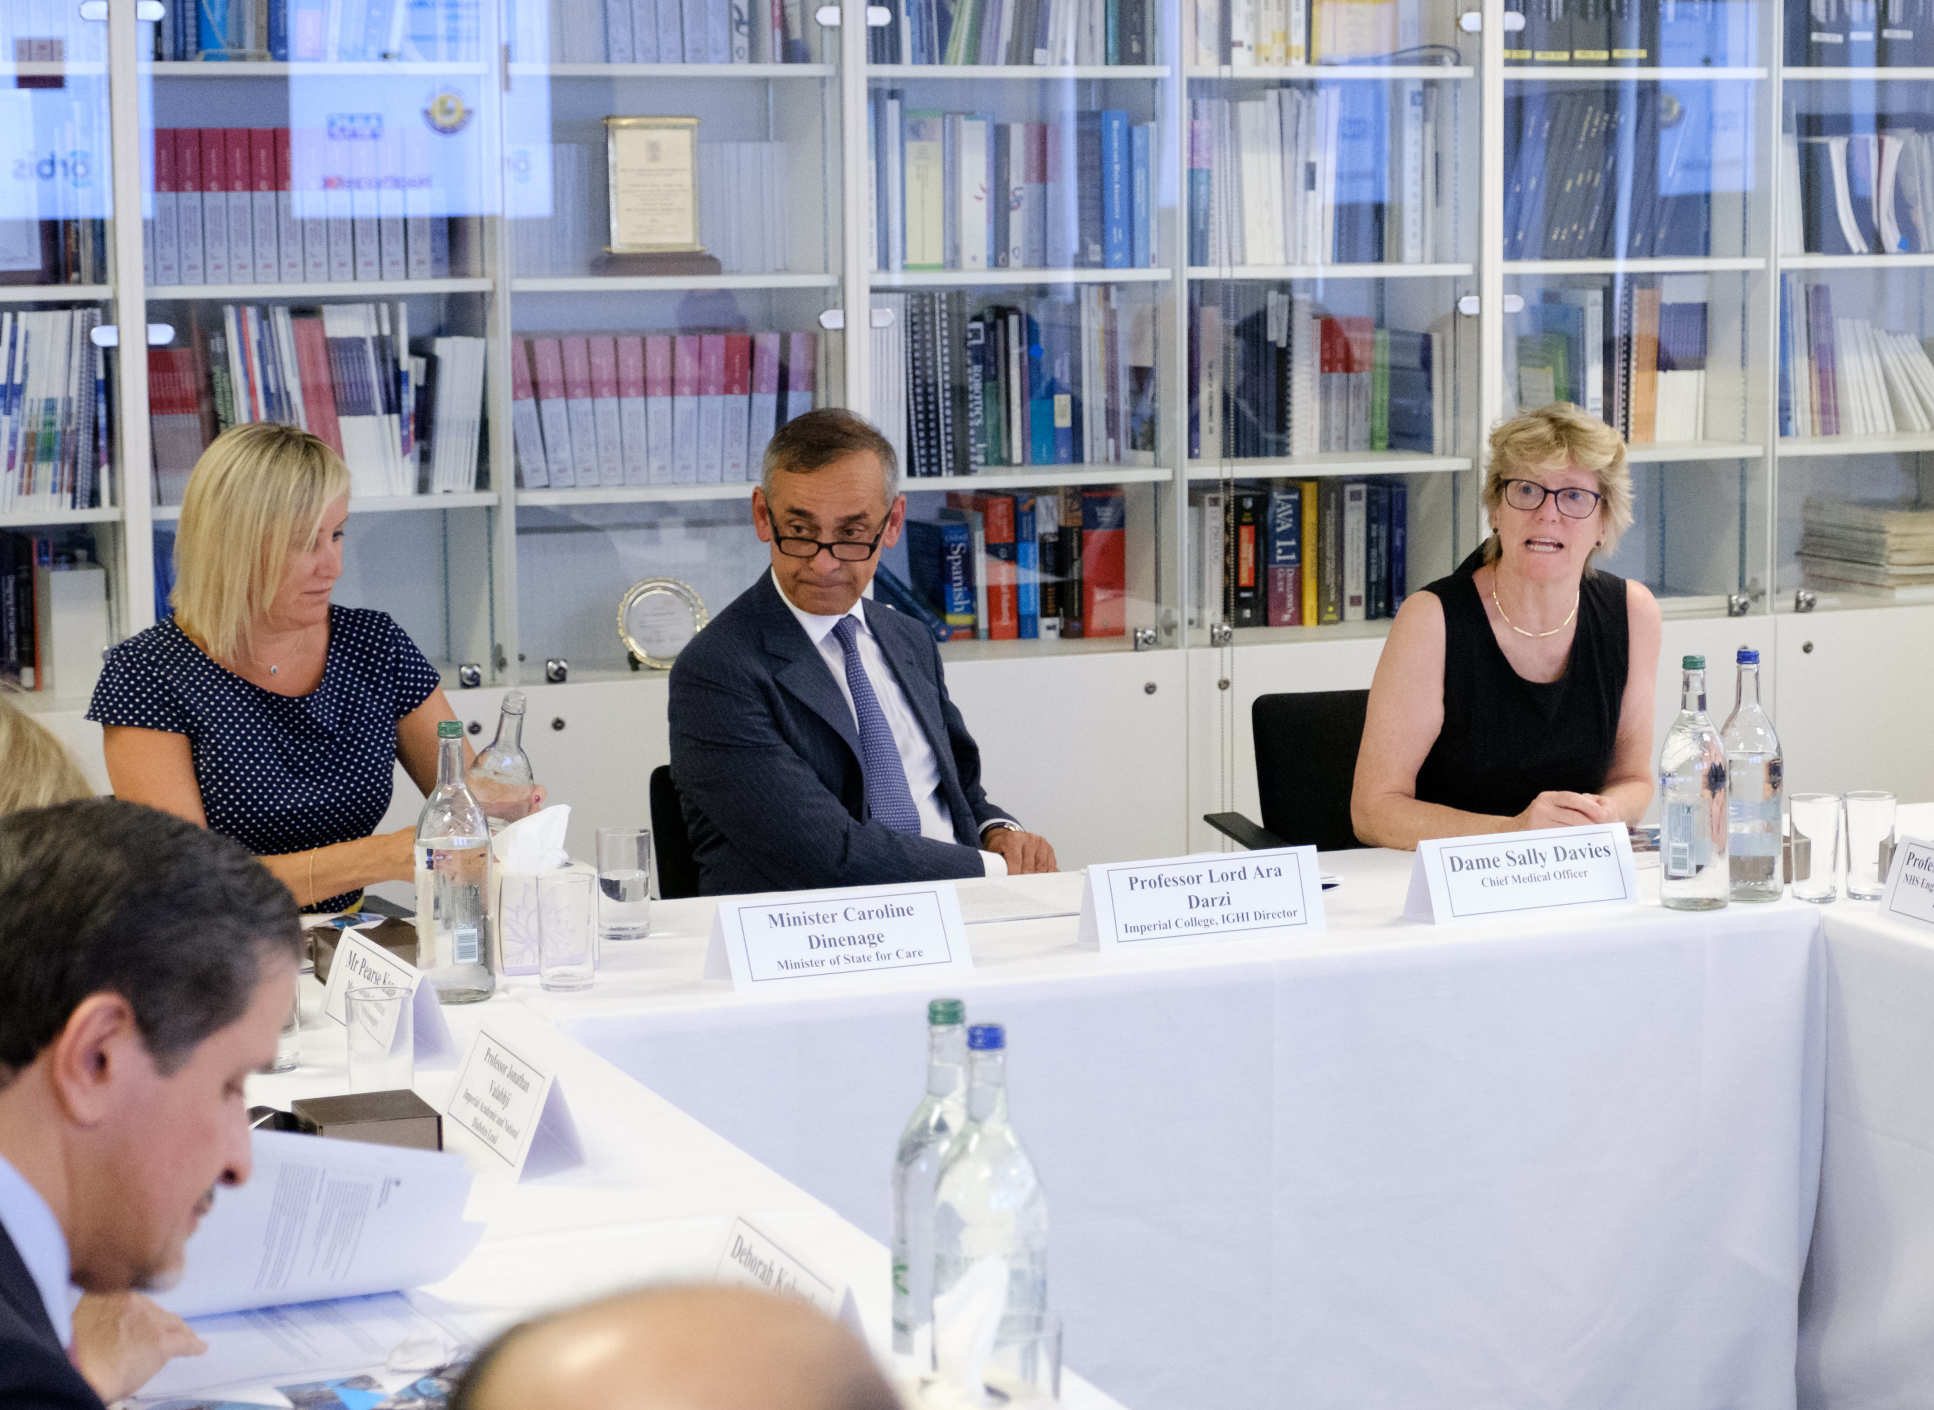 Chief Medical Officer Dame Sally Davies joined the discussions